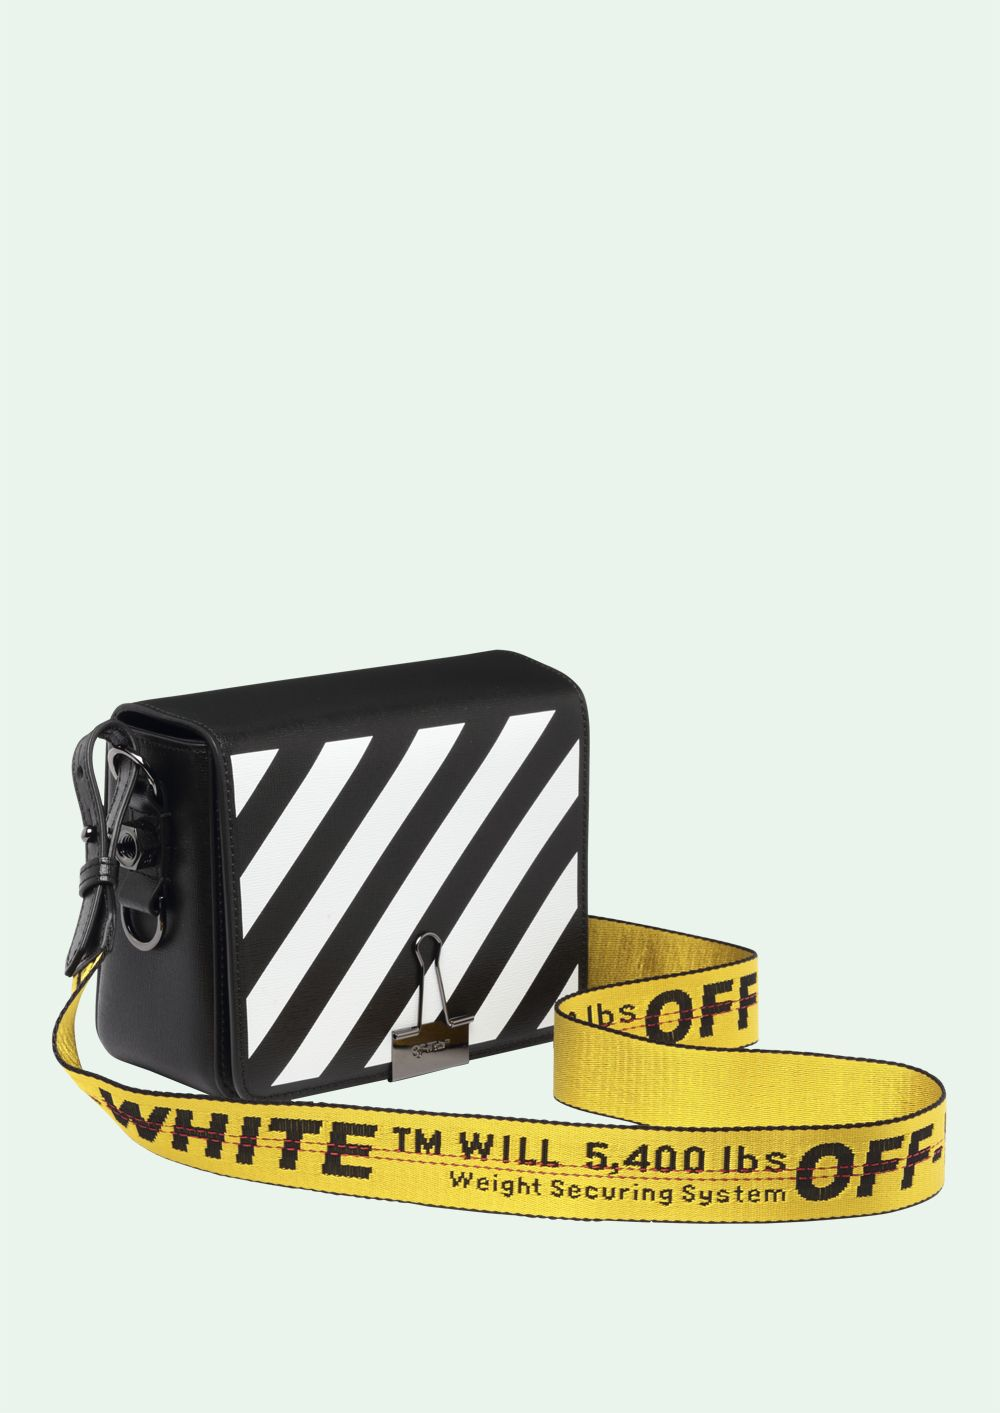 c2418617f88 OFF WHITE - Bags - OffWhite Off White Bag, White Bags, White Bag Outfit